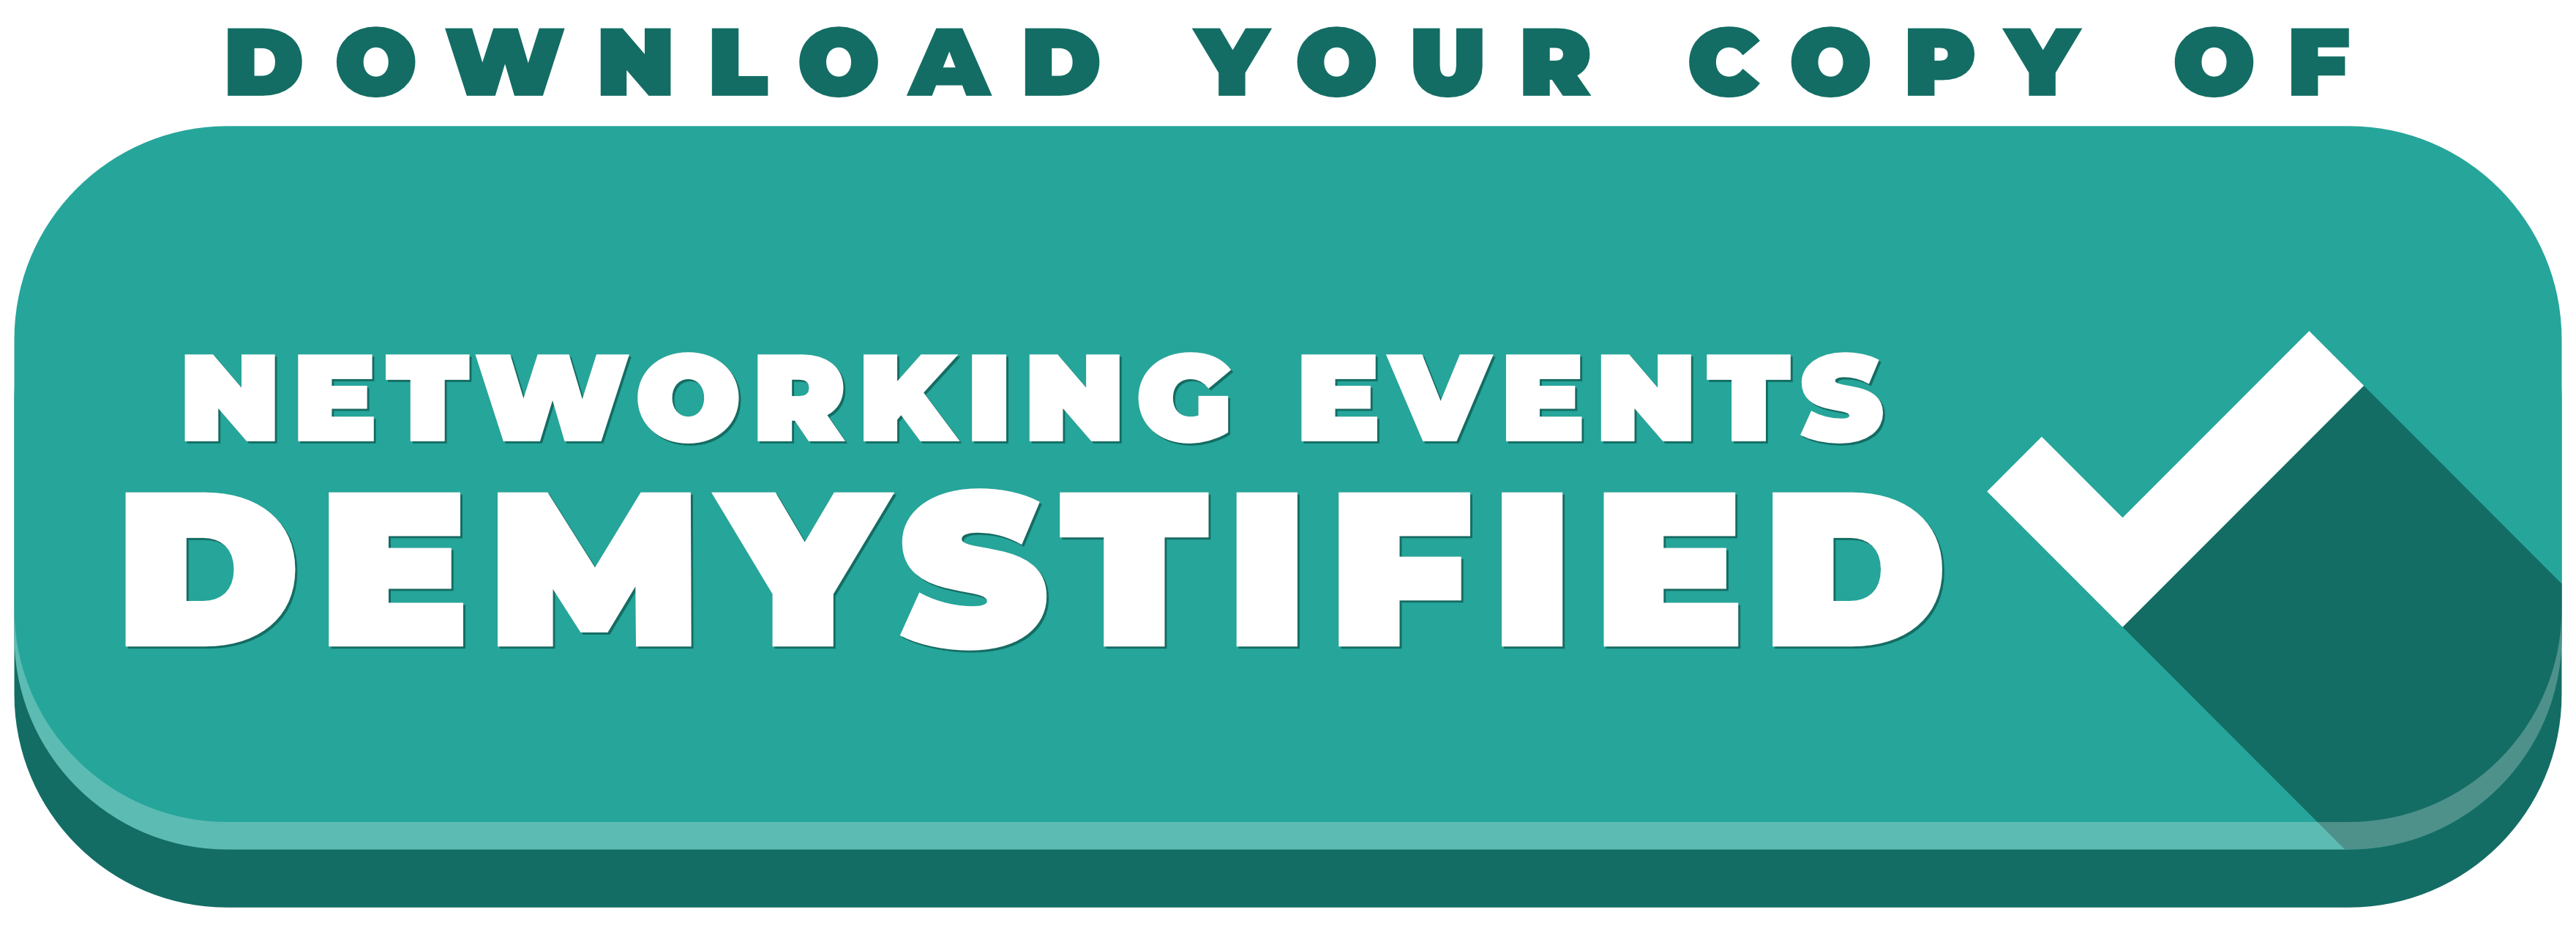 Networking Events Demystified green call to action button with white checkmark